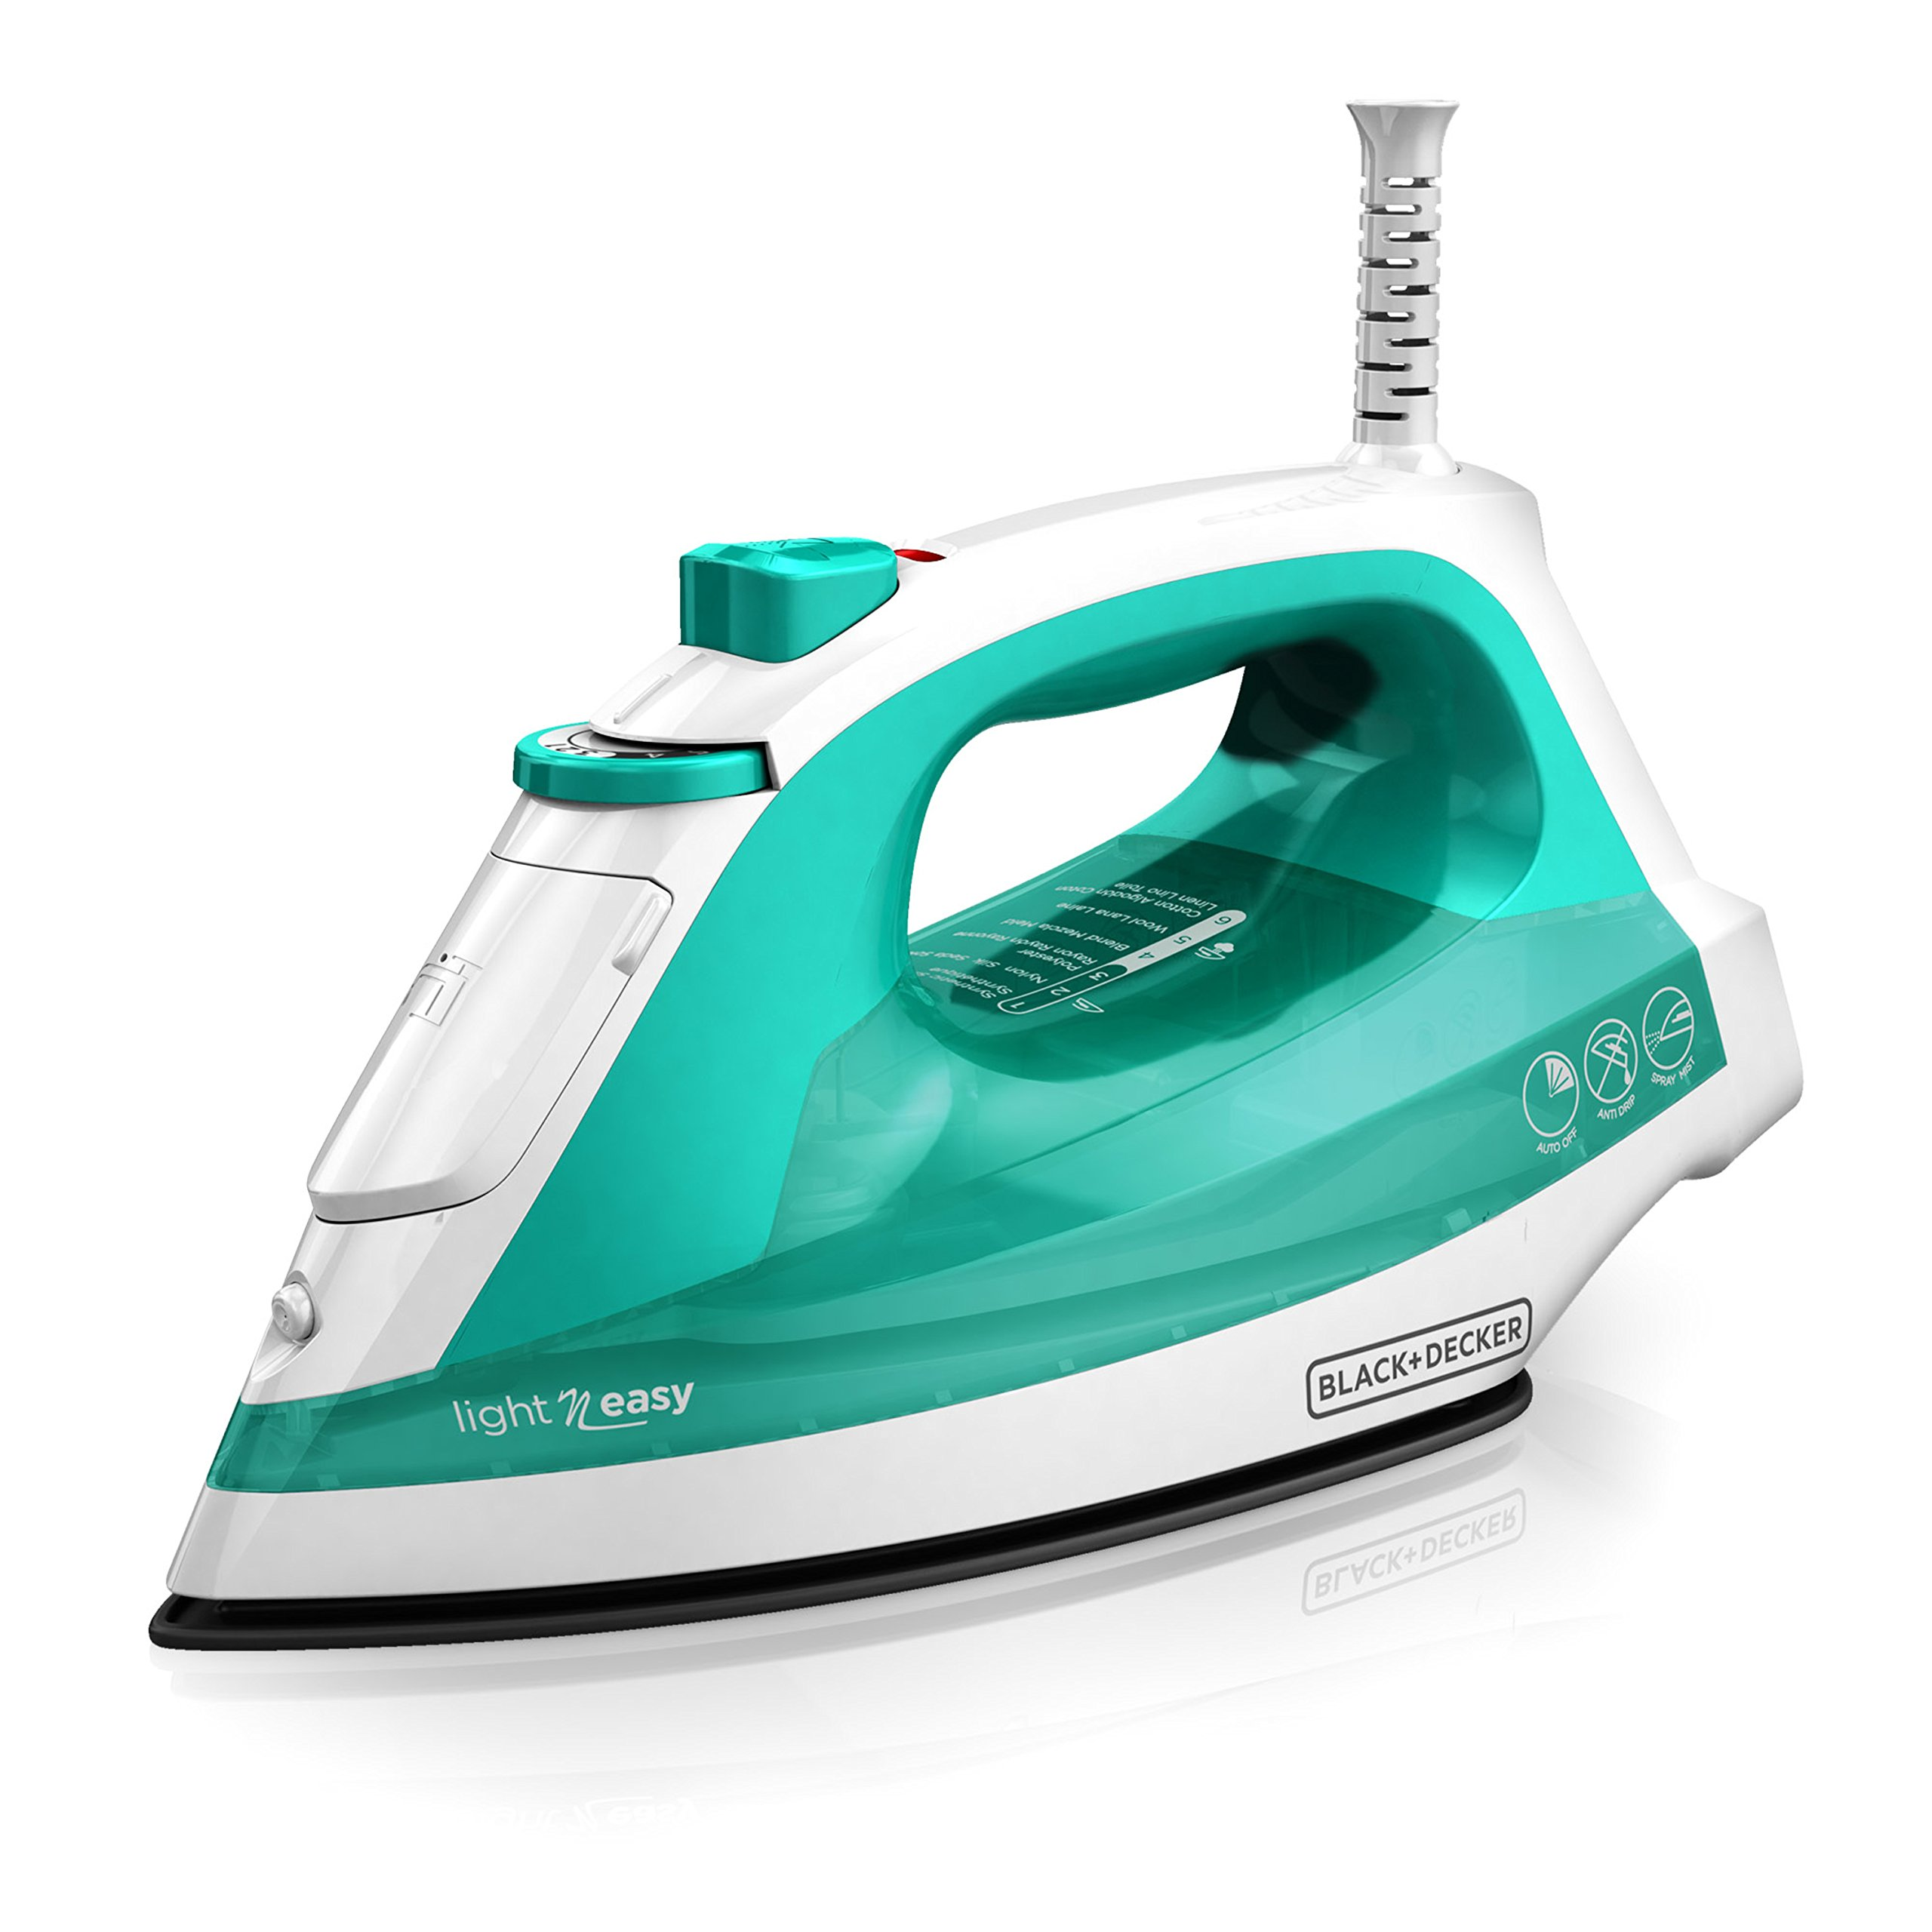 BLACK+DECKER Light 'N Easy Compact Steam Iron, Turquoise, IR1010 by BLACK+DECKER